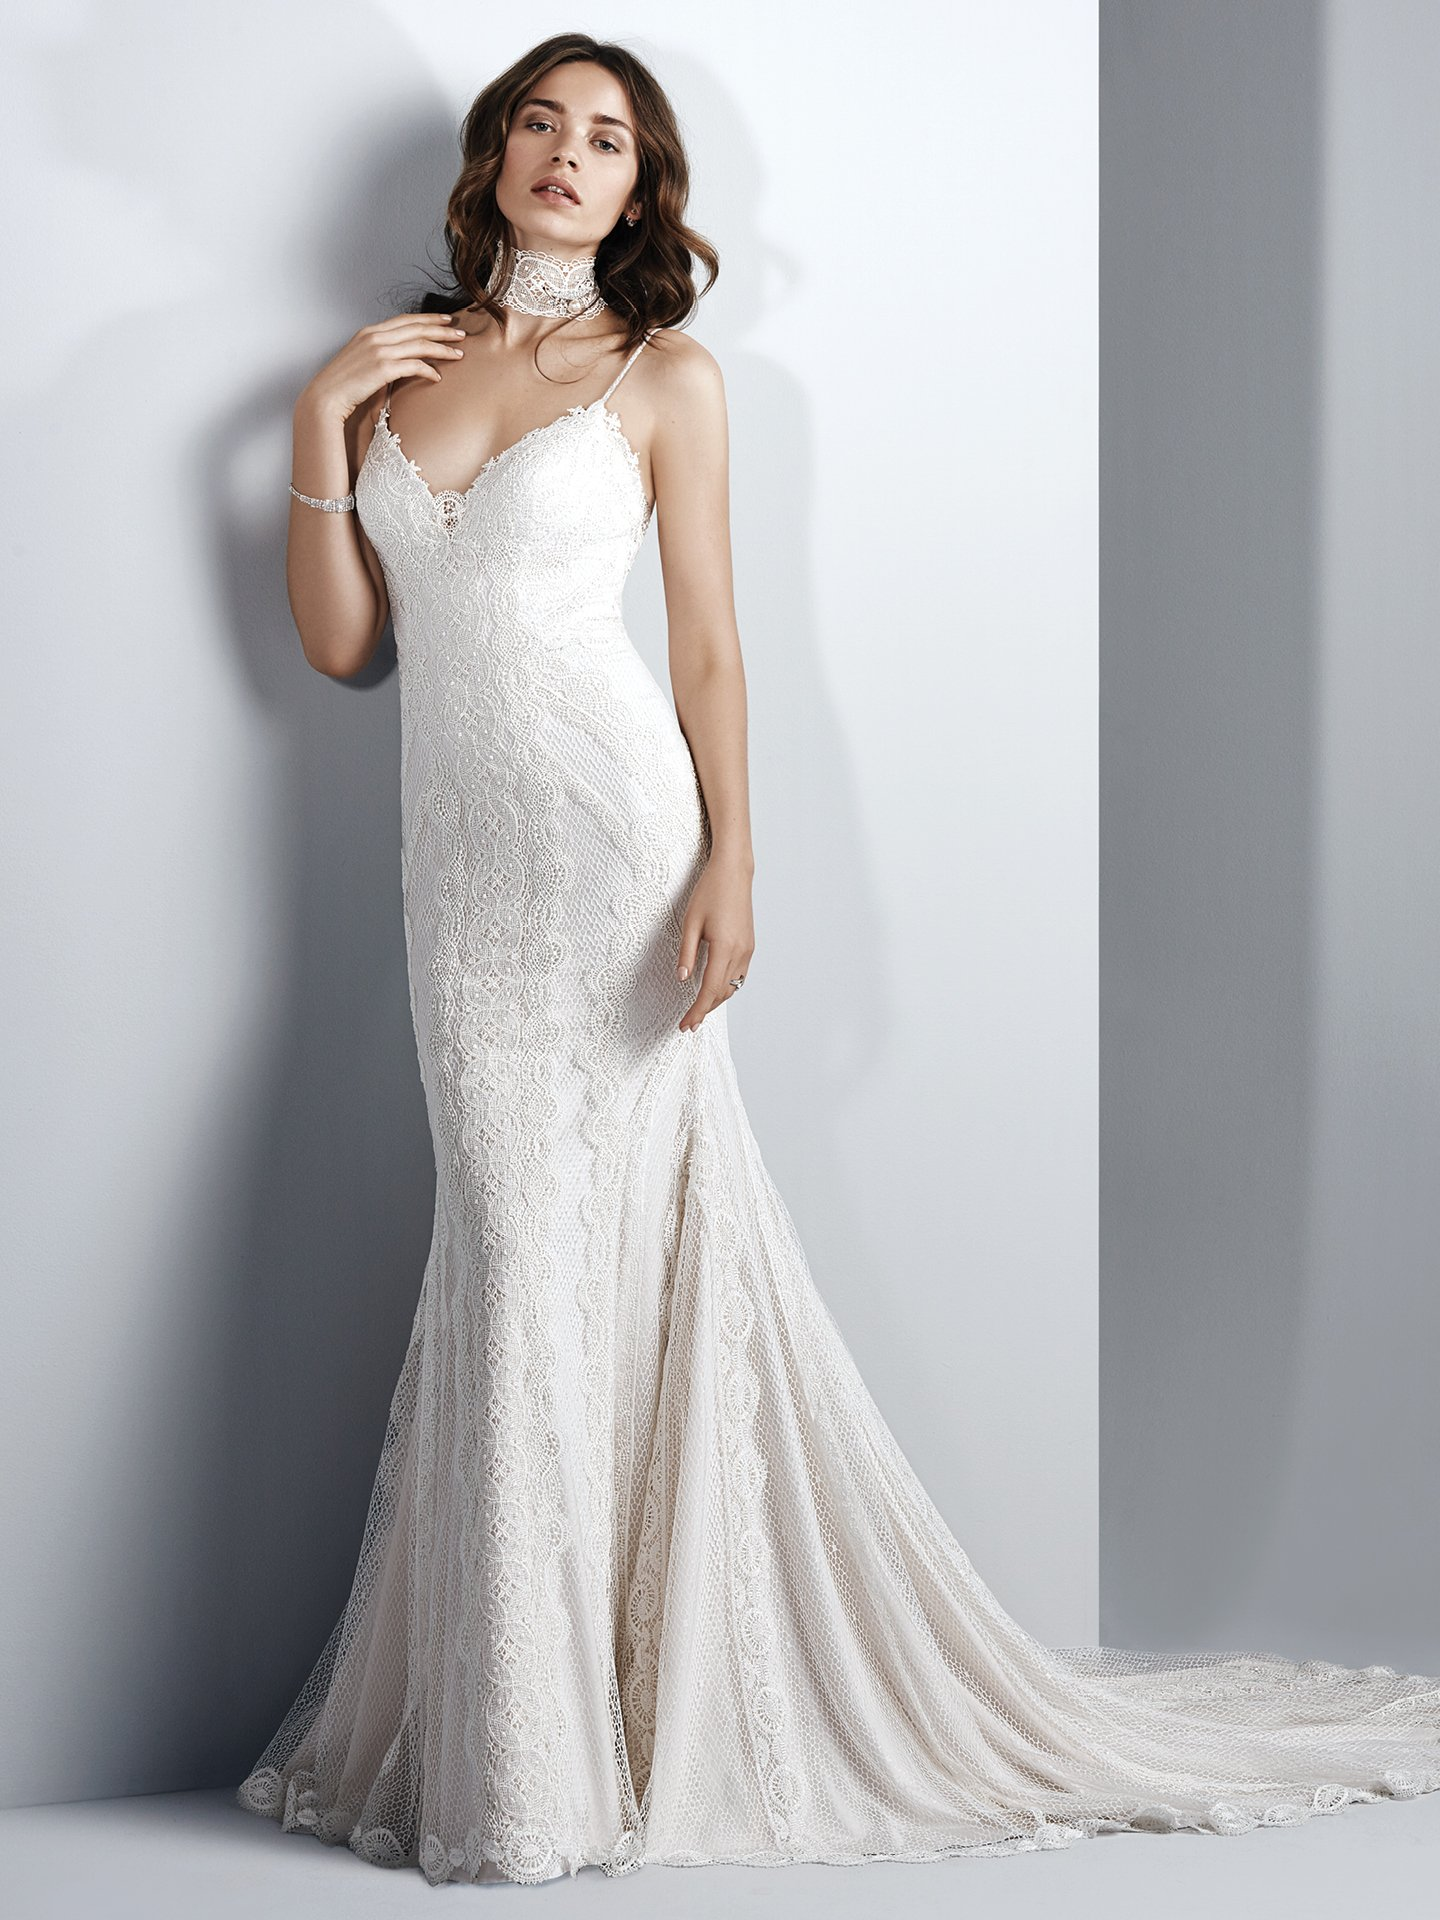 The Latest Wedding Dress Trends for Engagement Season 2018 - Narissa wedding dress with Jersey lining for a luxe, breezy and figure-flattering fit.